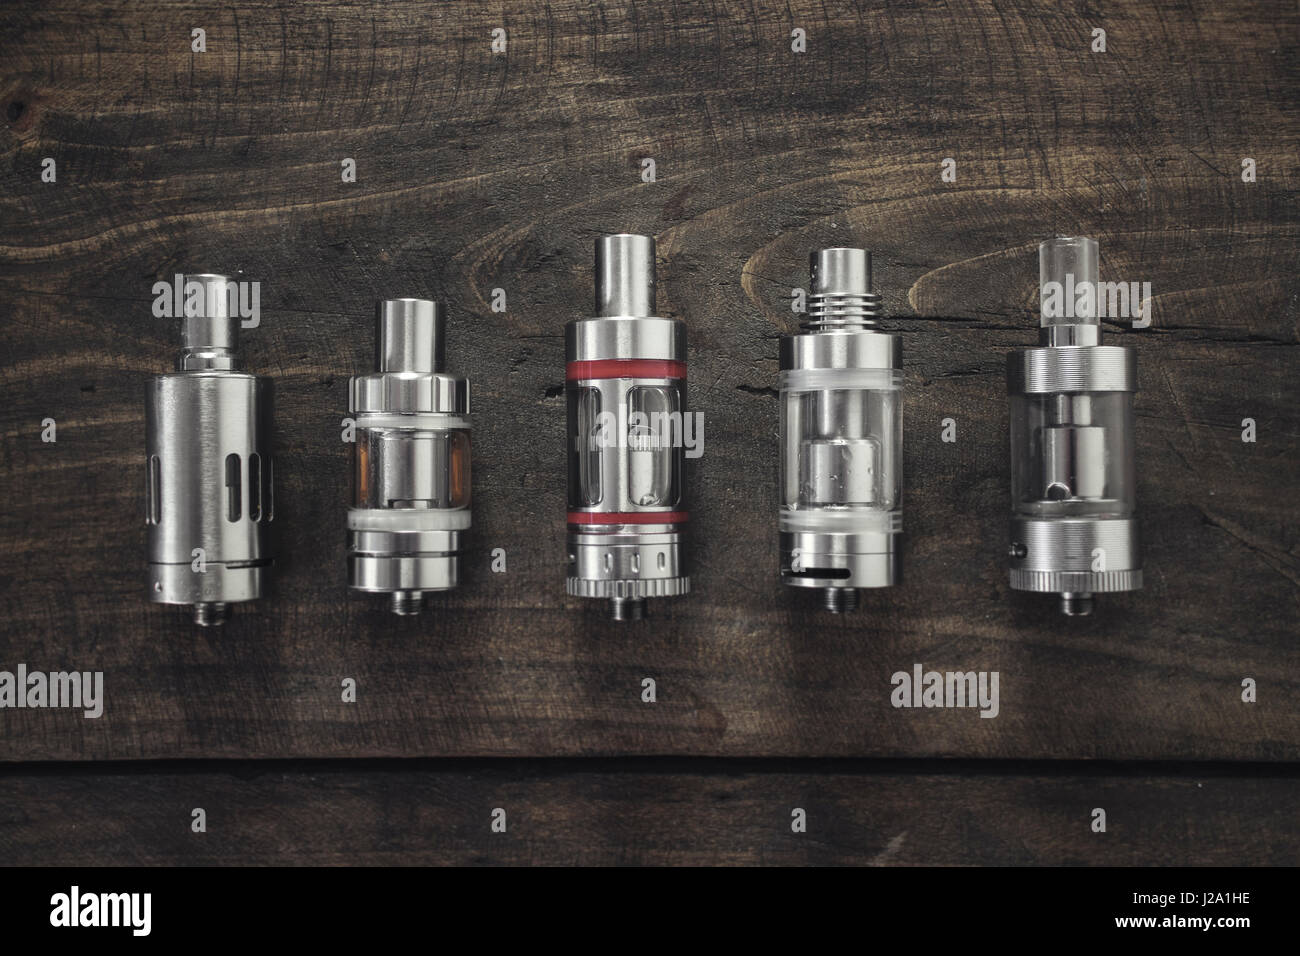 Electronic cigarette Atomizers from above - Stock Image